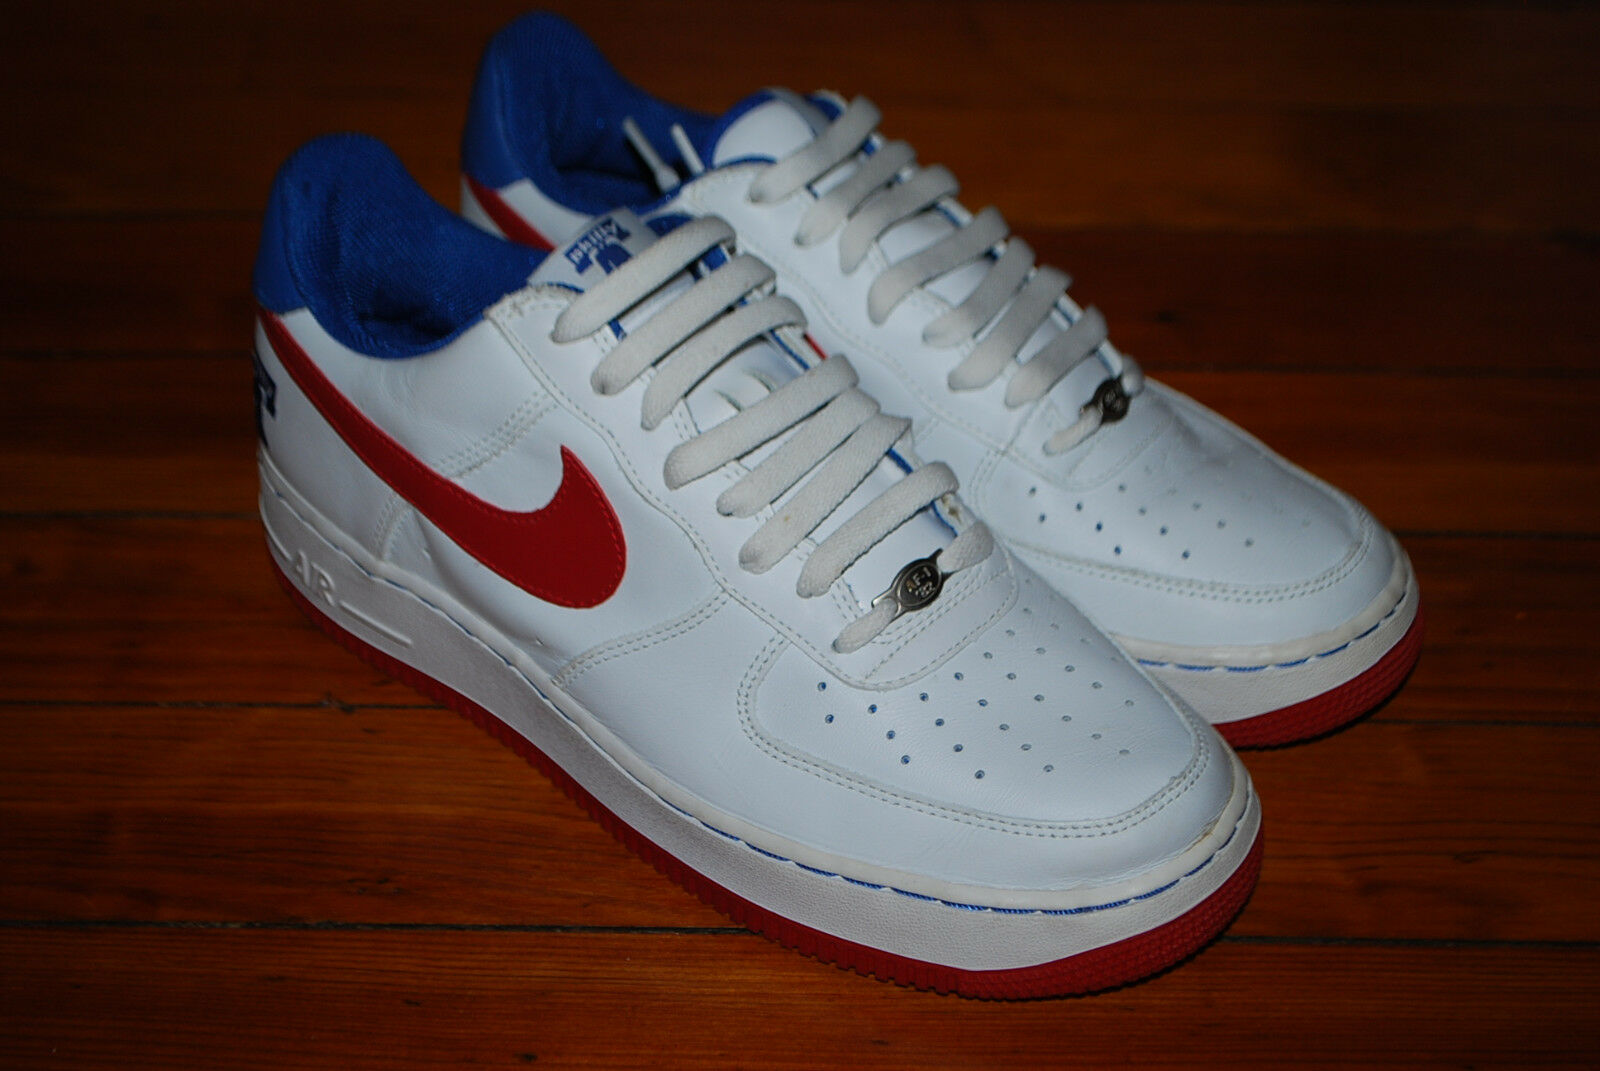 newest e59e9 bf225 85%OFF Limited Edition Nike Air Force 1 AF1 Philly Sneaker (9) 306353